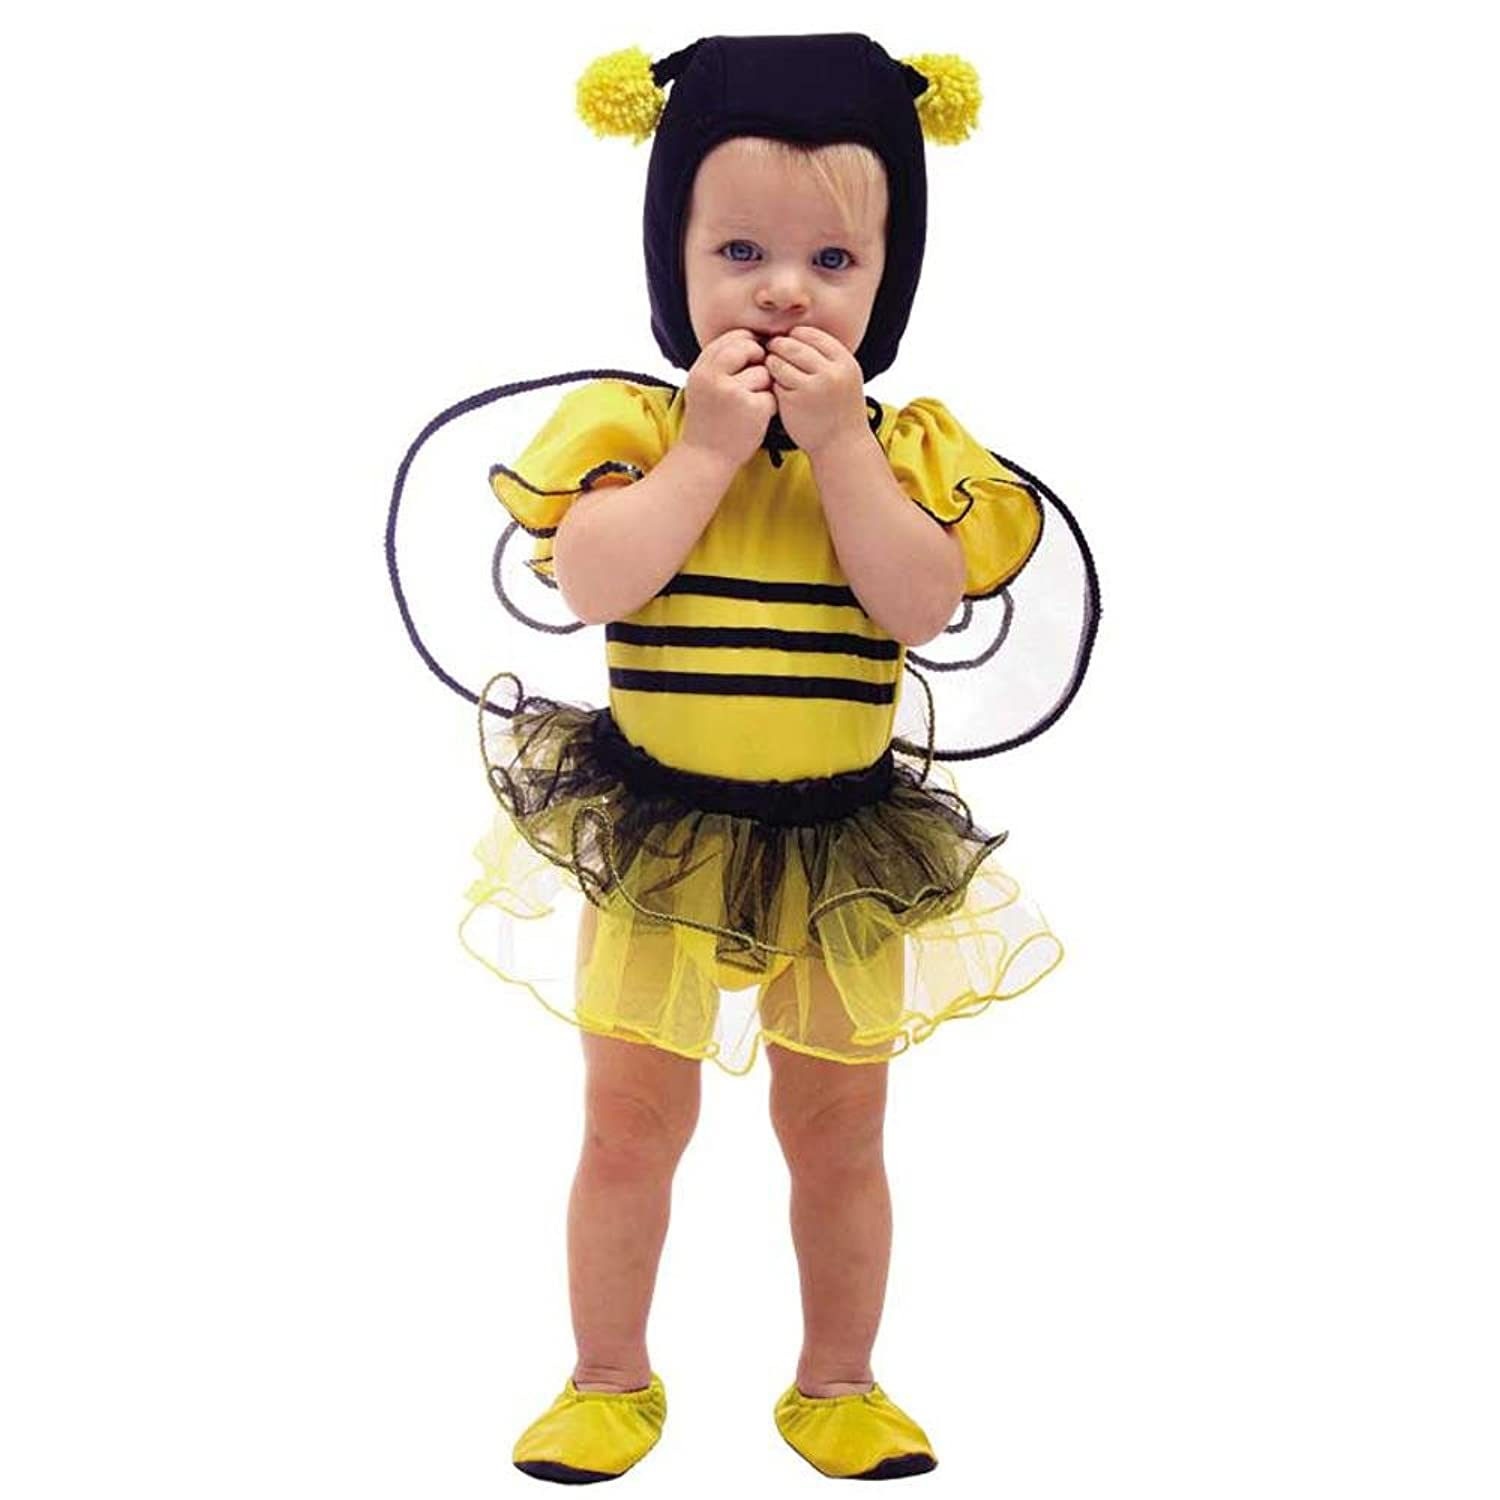 Amazon.com Childu0027s Toddler Beautiful Bumble Bee Costume (1-2T) Clothing  sc 1 st  Amazon.com & Amazon.com: Childu0027s Toddler Beautiful Bumble Bee Costume (1-2T ...